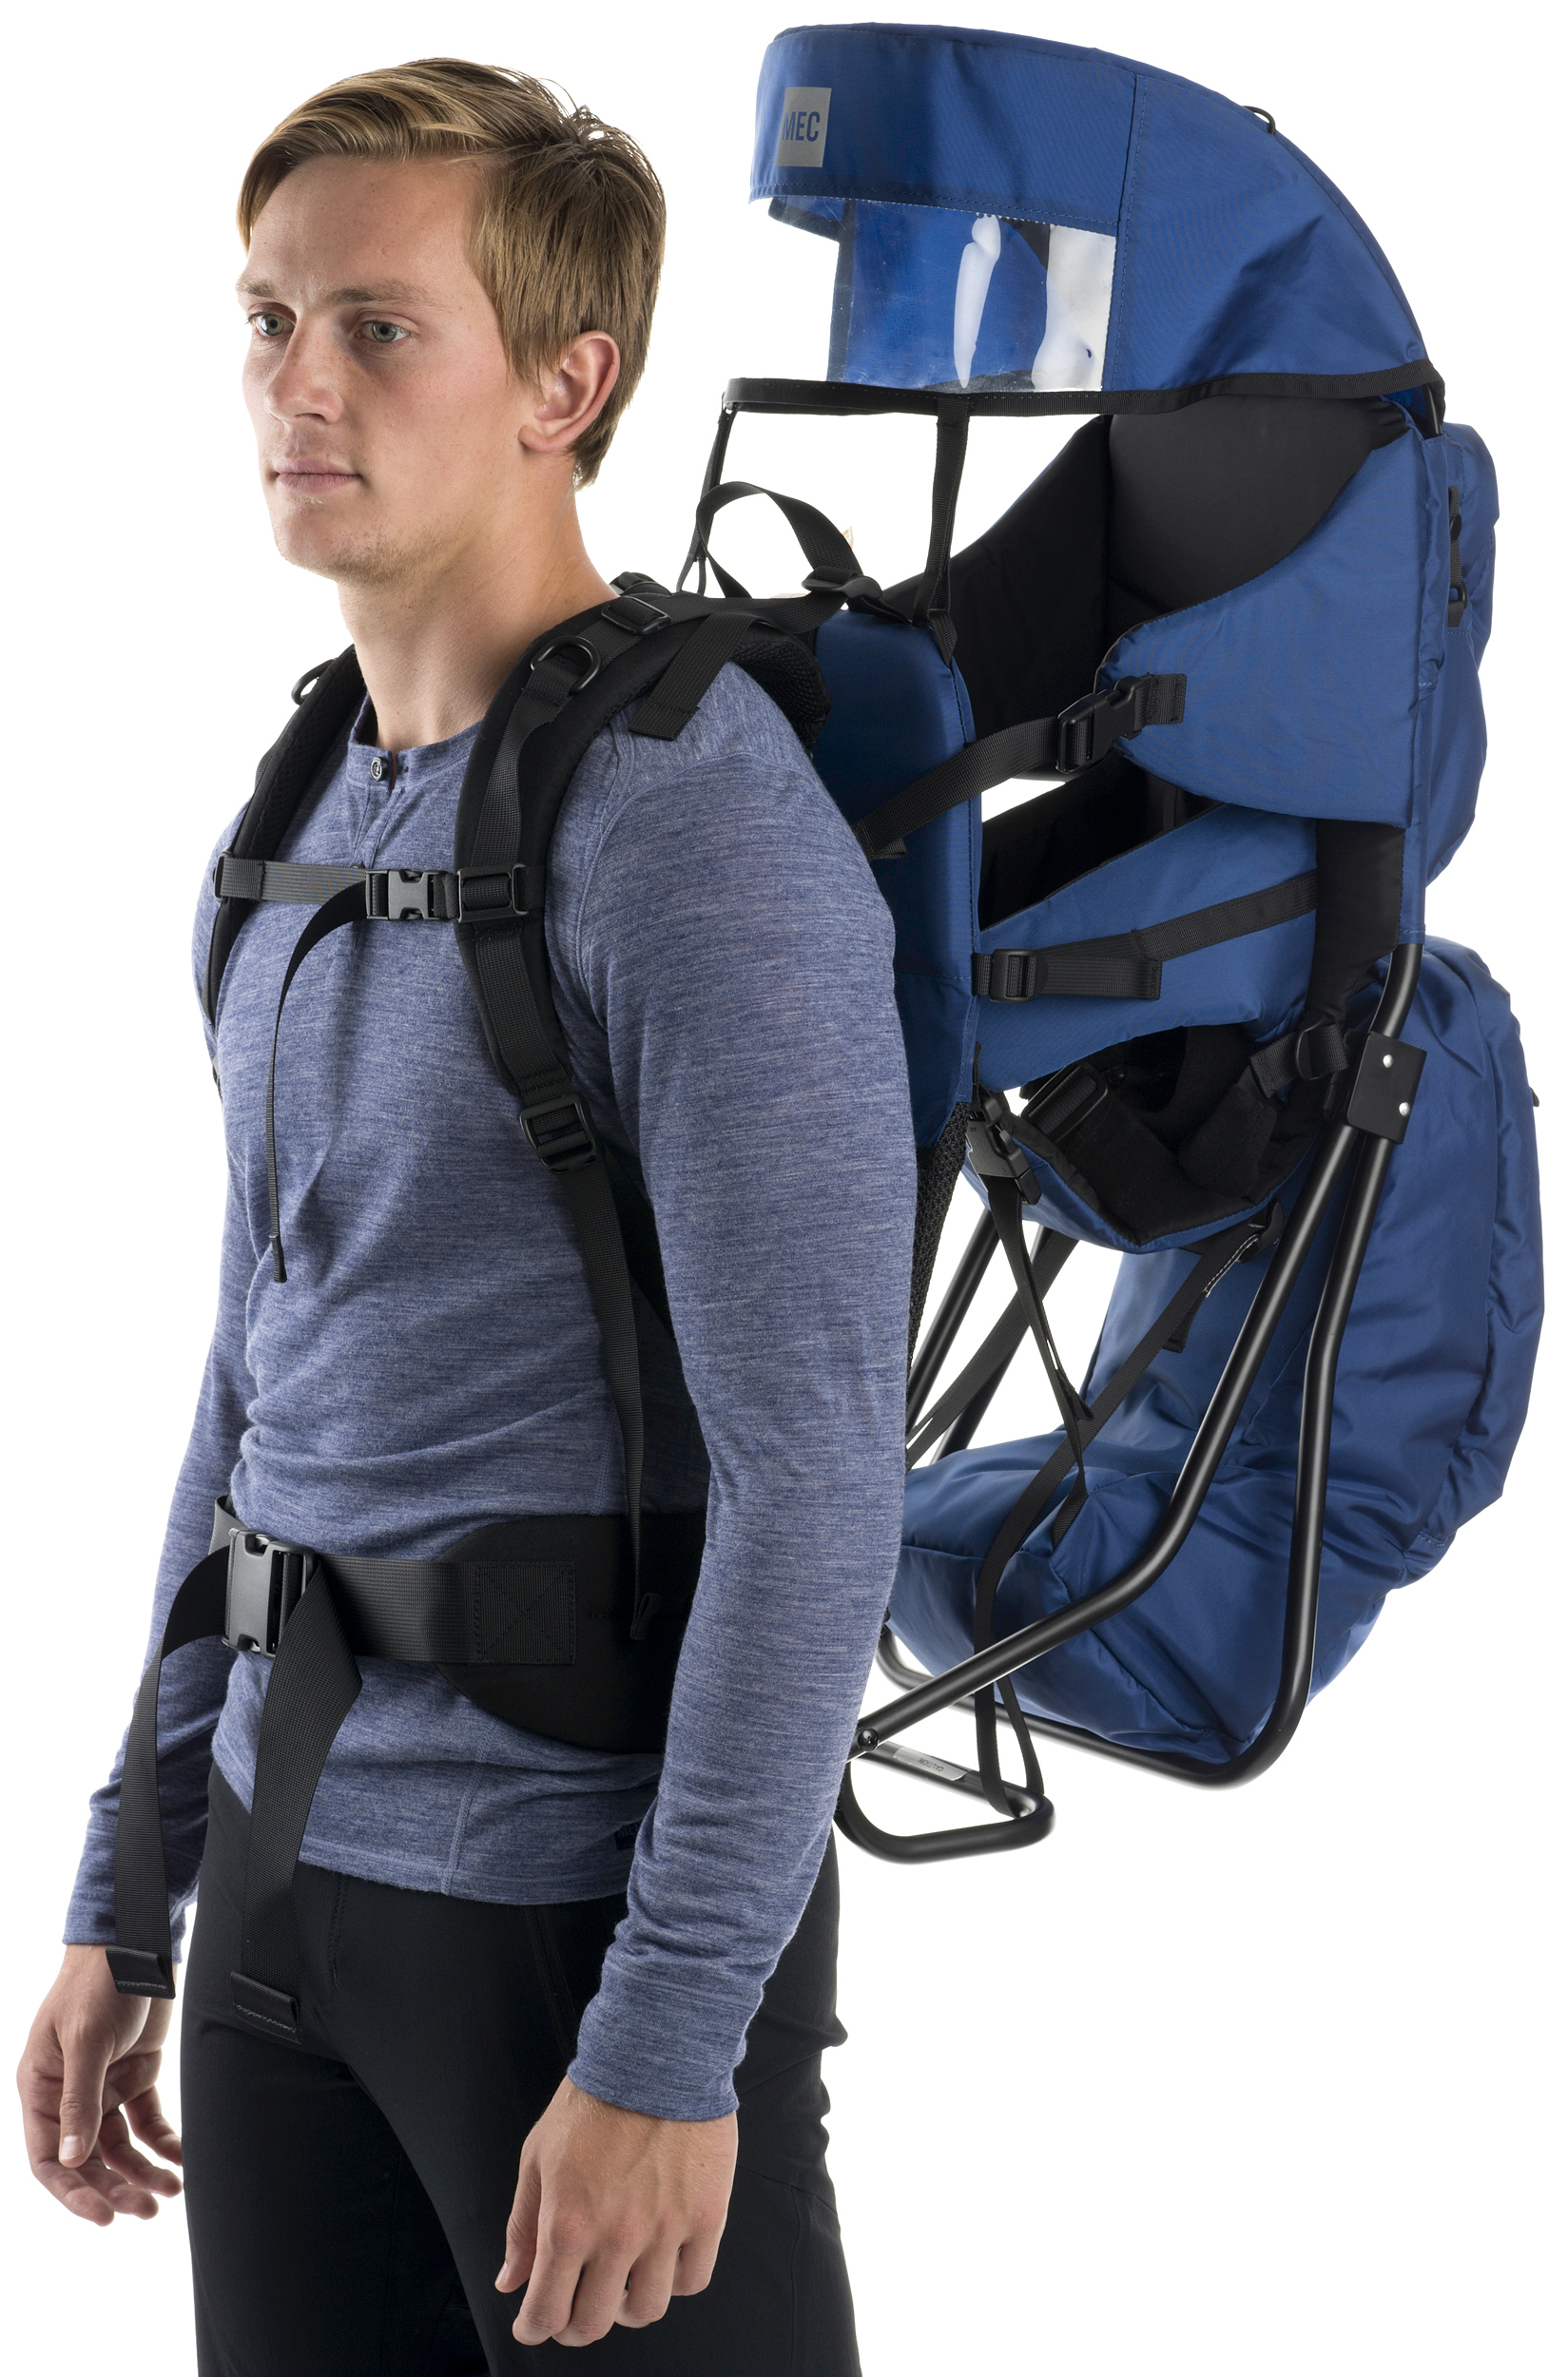 kid carrying hiking backpack